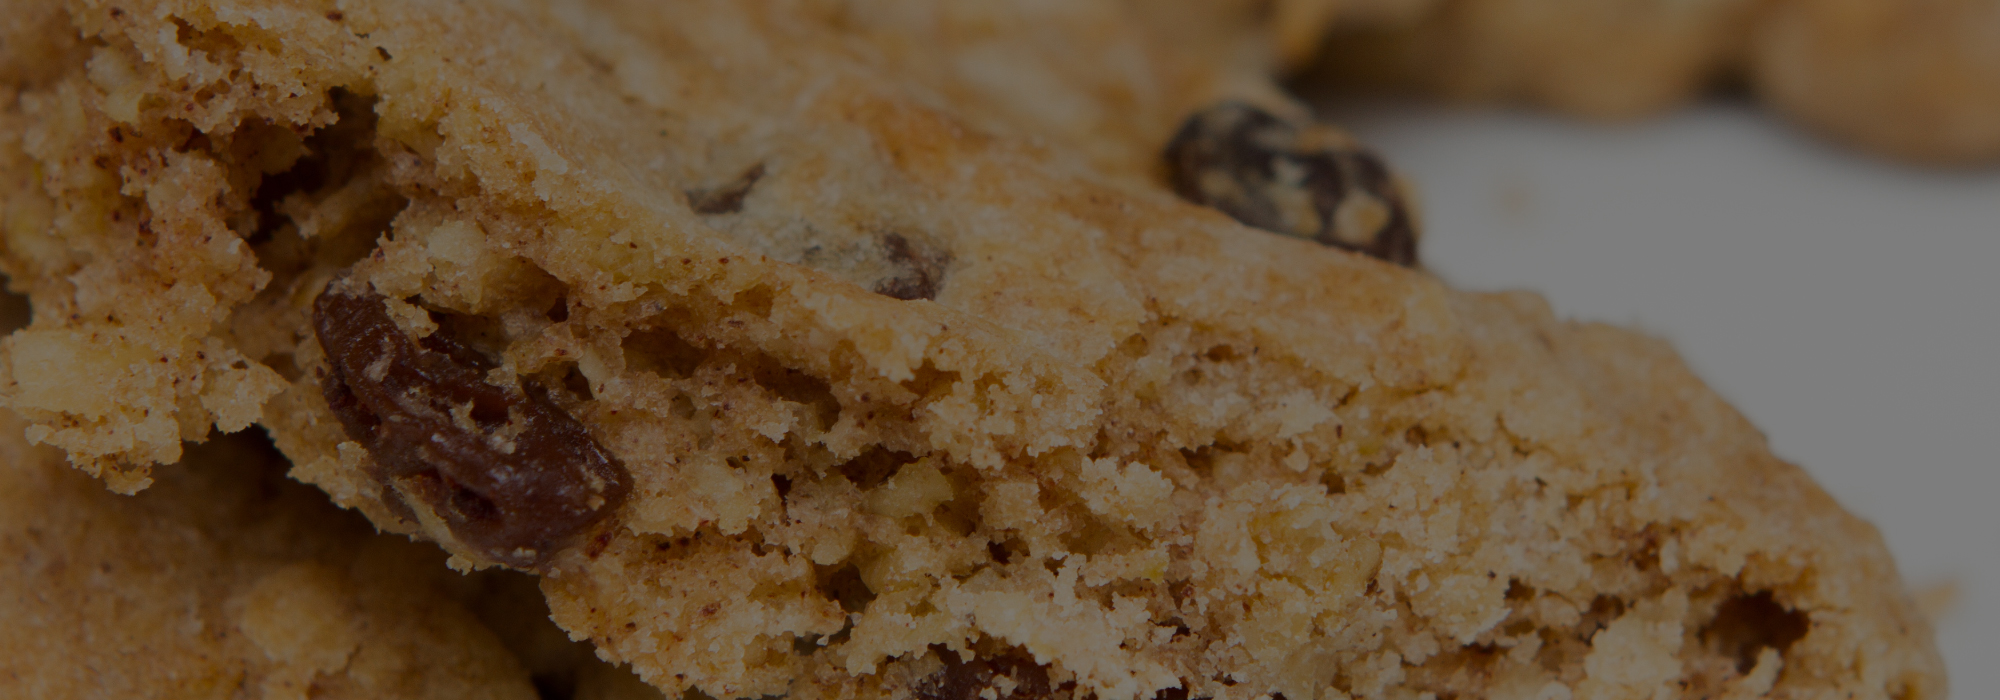 Cricket Powder Oatmeal-Raisin Cookies Recipe